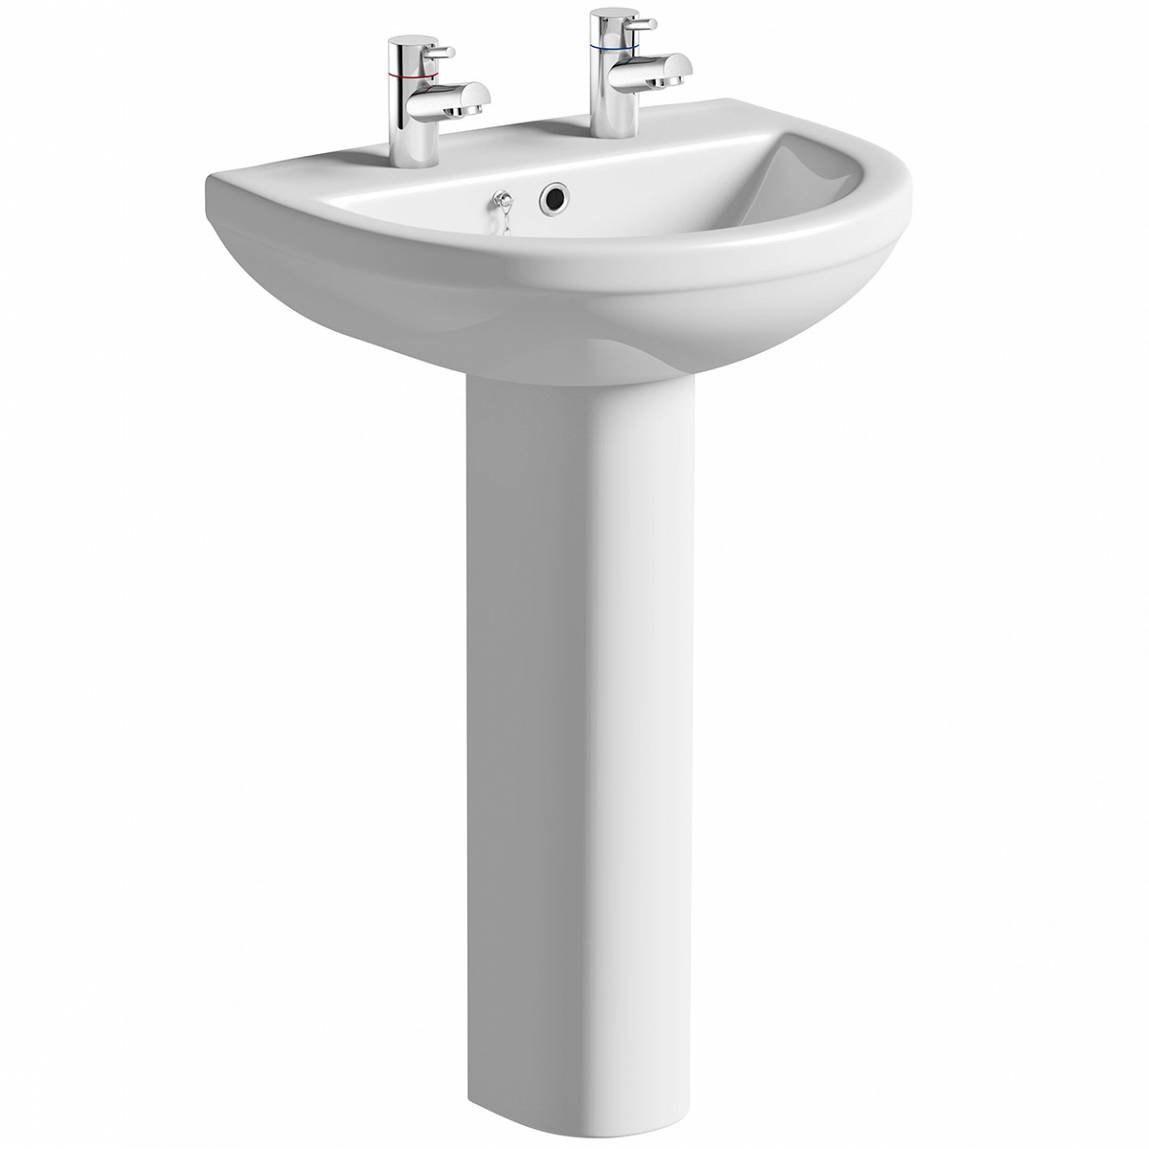 Image of Oakley 500 2TH Basin & Pedestal